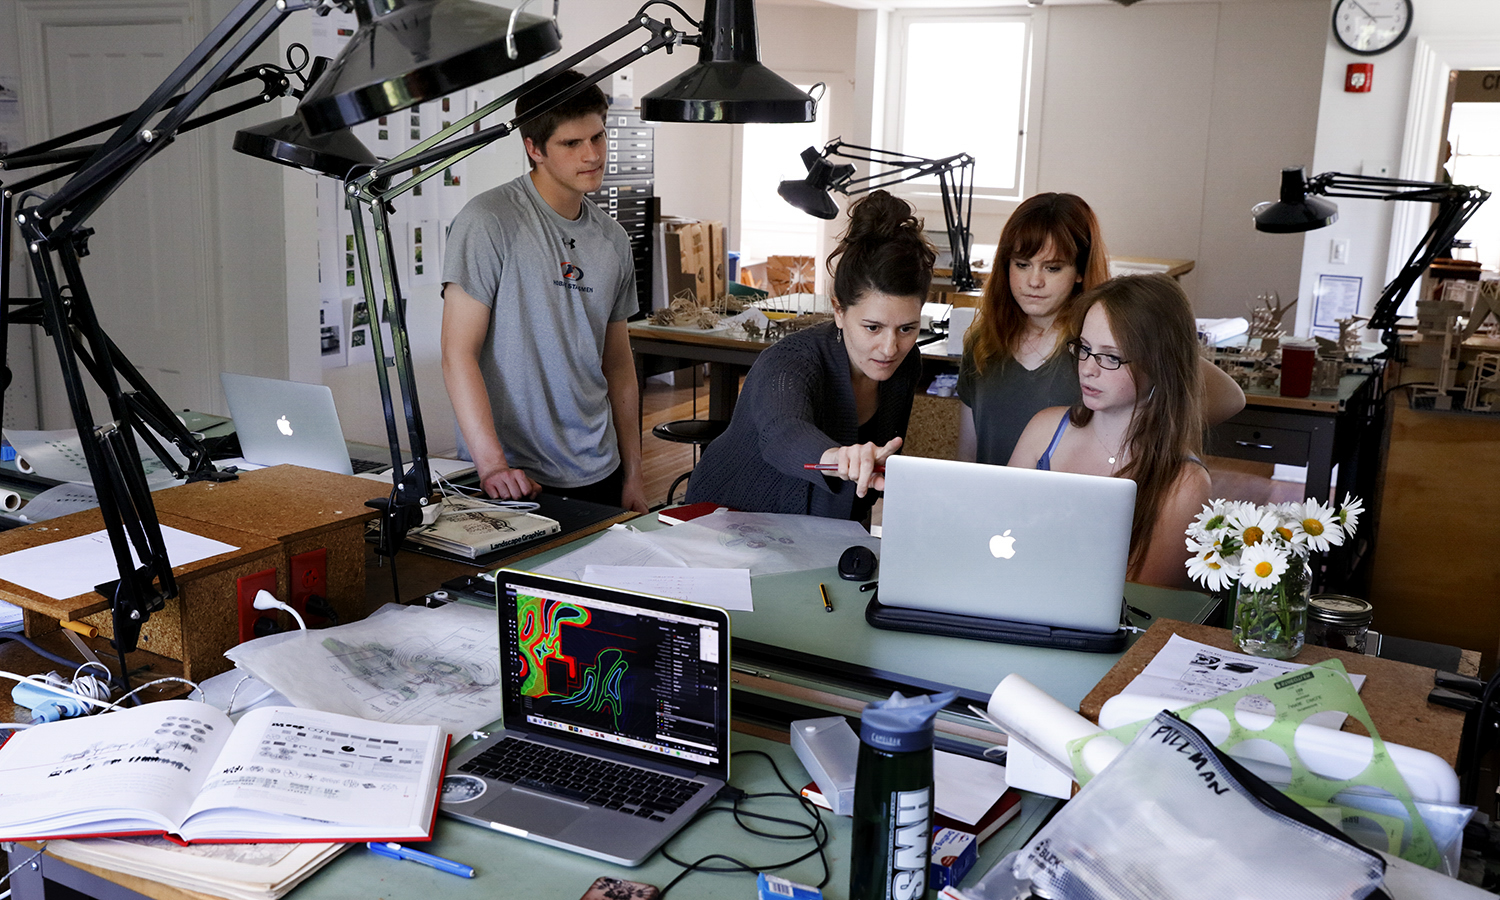 Assistant Professor of Architectural Studies Gabriella D'Angelo instructs students on how to use AutoCAD to transfer their hand drawn designs to the computer. J.P. White '17, Audrey English '17, Sarah Pullman '18 and Garth Burke '17 (not pictured) are creating landscape designs for the area around the new Richard S. Perkin Observatory.